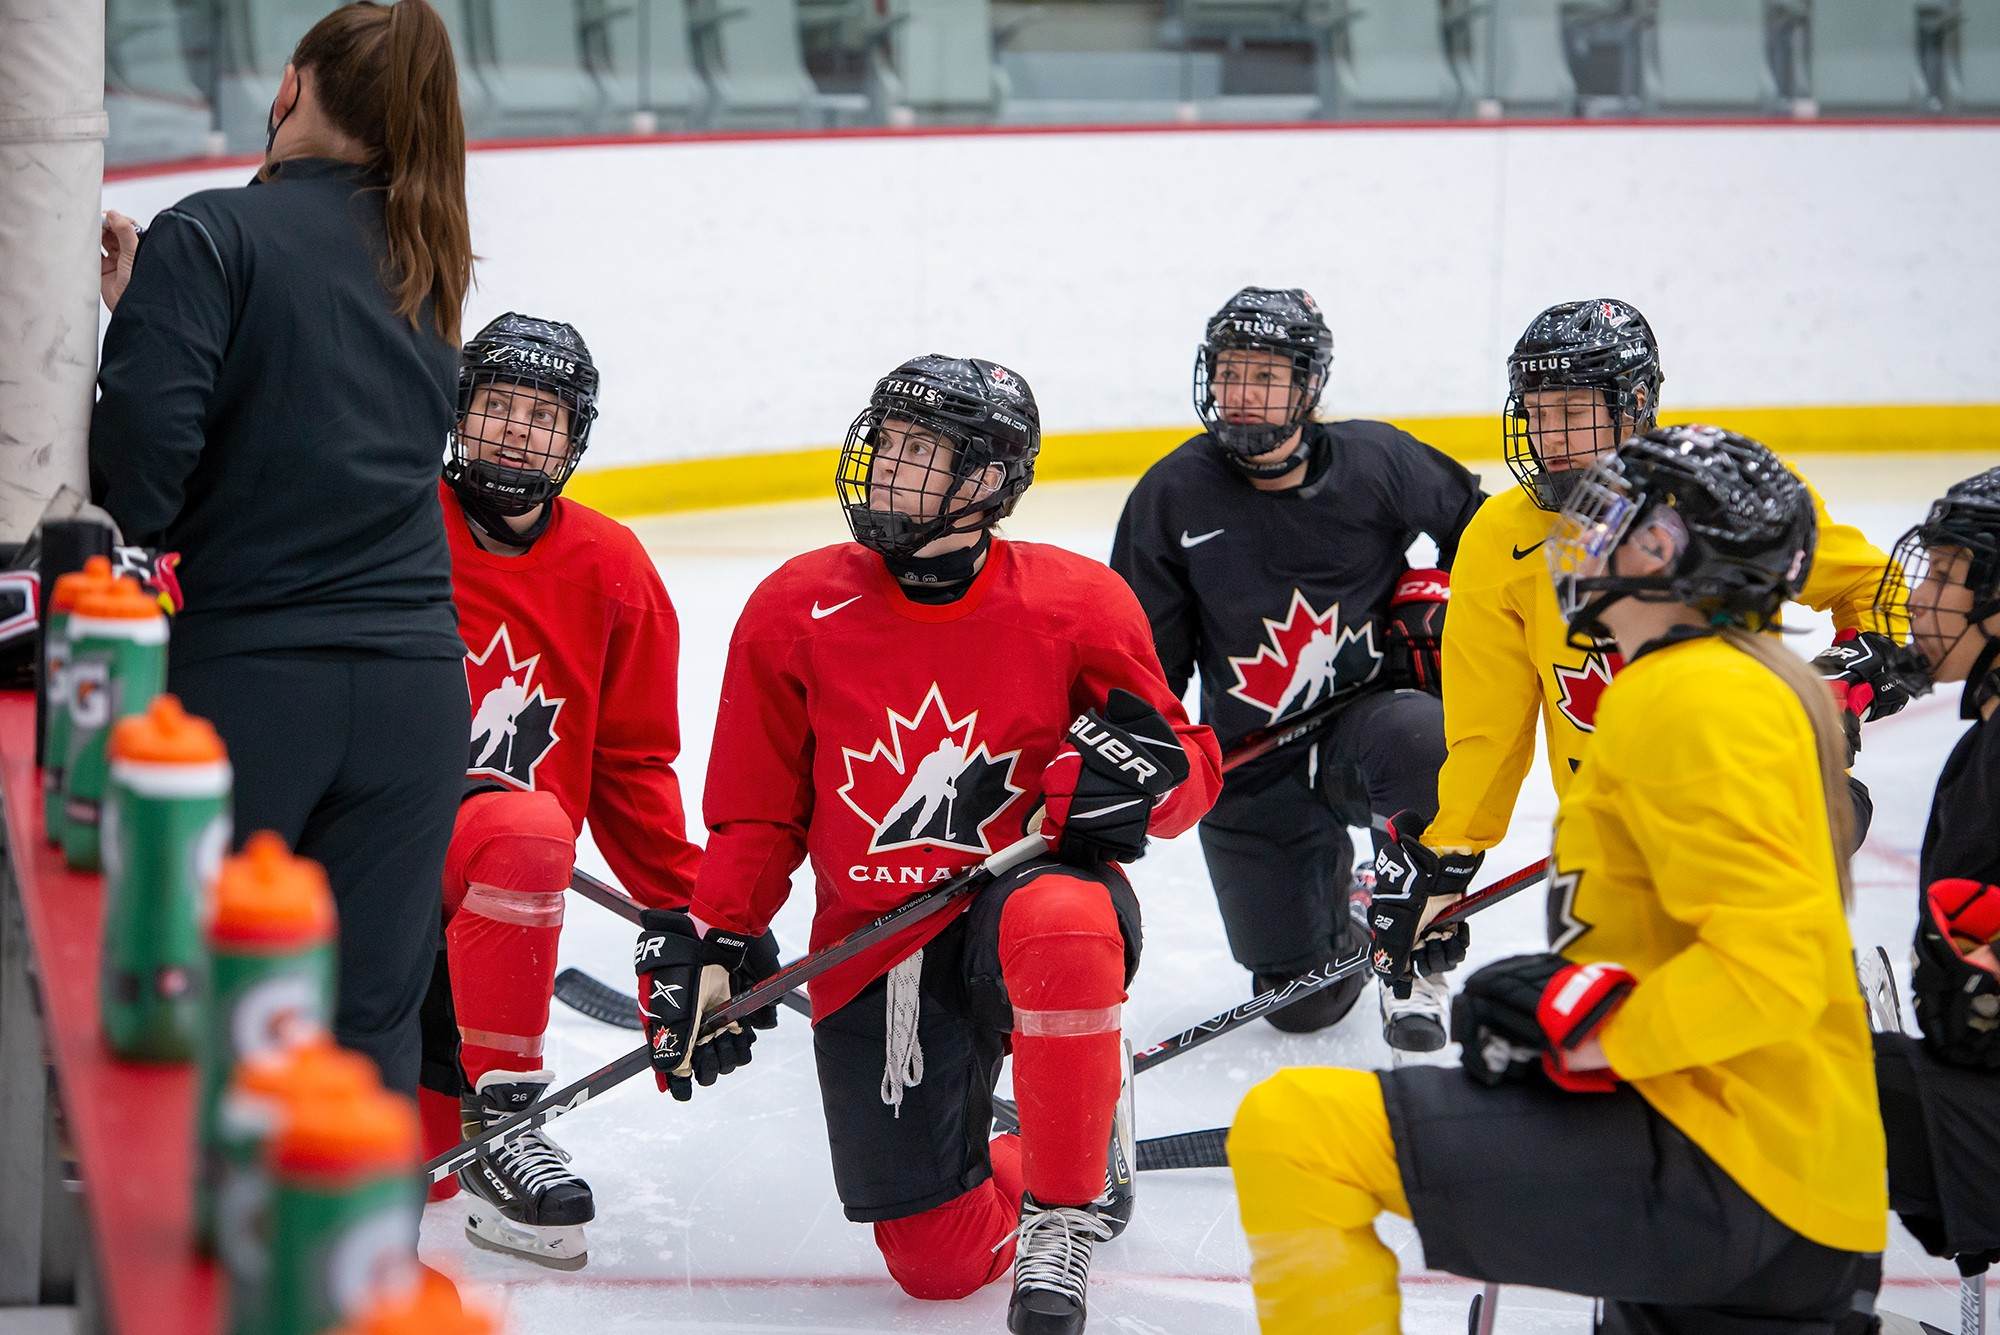 Players trying out for Team Canada take a knee at the January training camp in Calgary. - MATTHEW MURNAGHAN / HOCKEY CANADA IMAGES